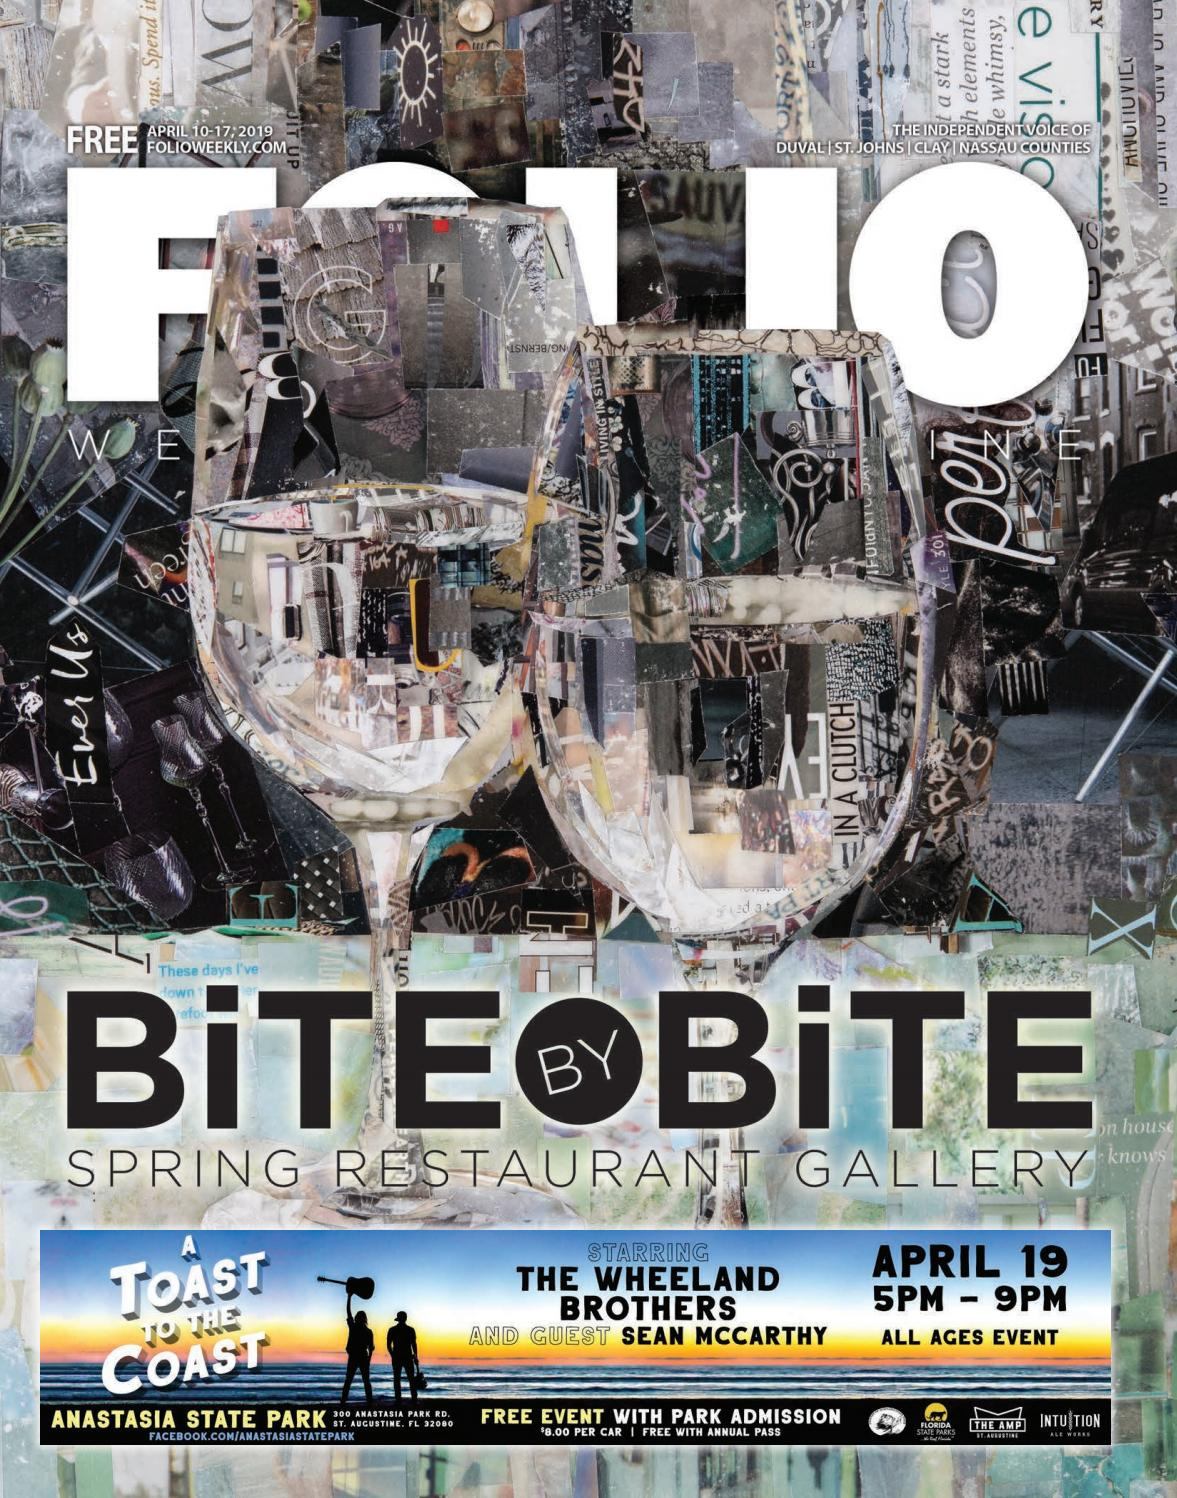 2bc237070a6e Bite By Bite: Spring Restaurant Gallery by Folio Weekly - issuu